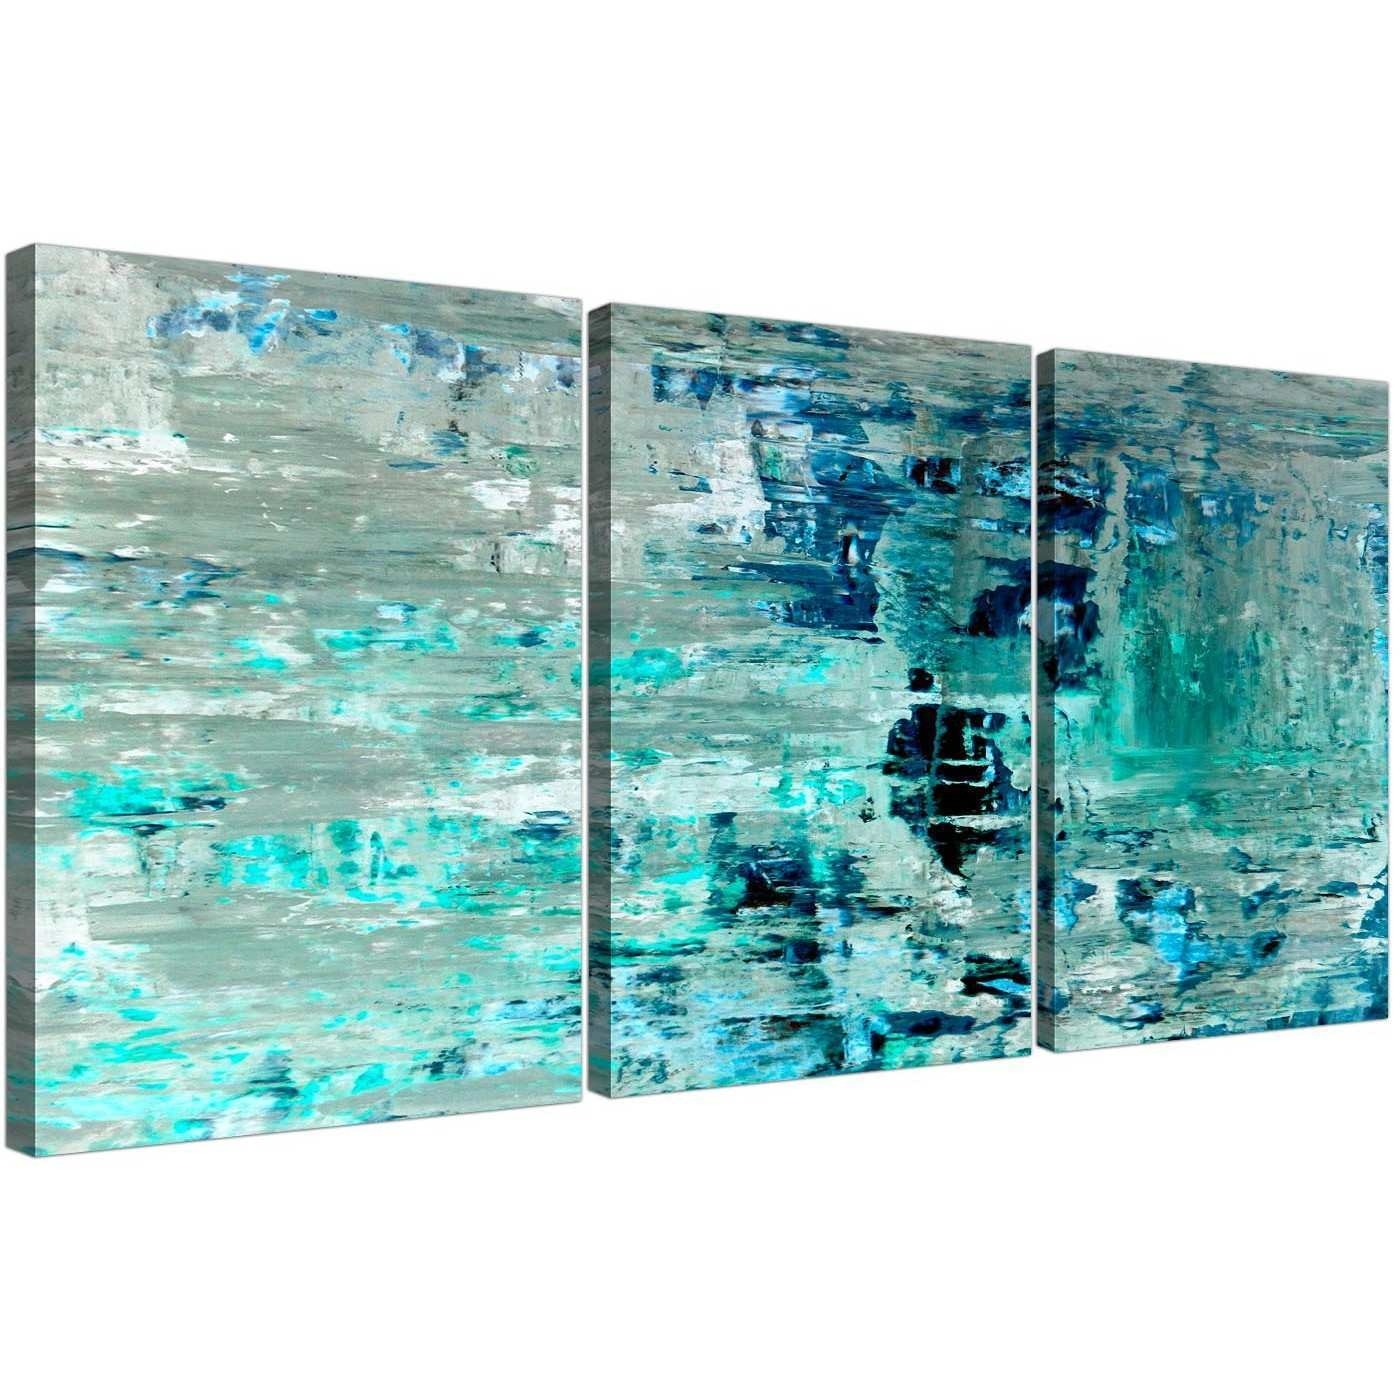 Teal Paintings On Canvas Awesome Turquoise Teal Abstract Painting in Teal Wall Art (Image 16 of 20)